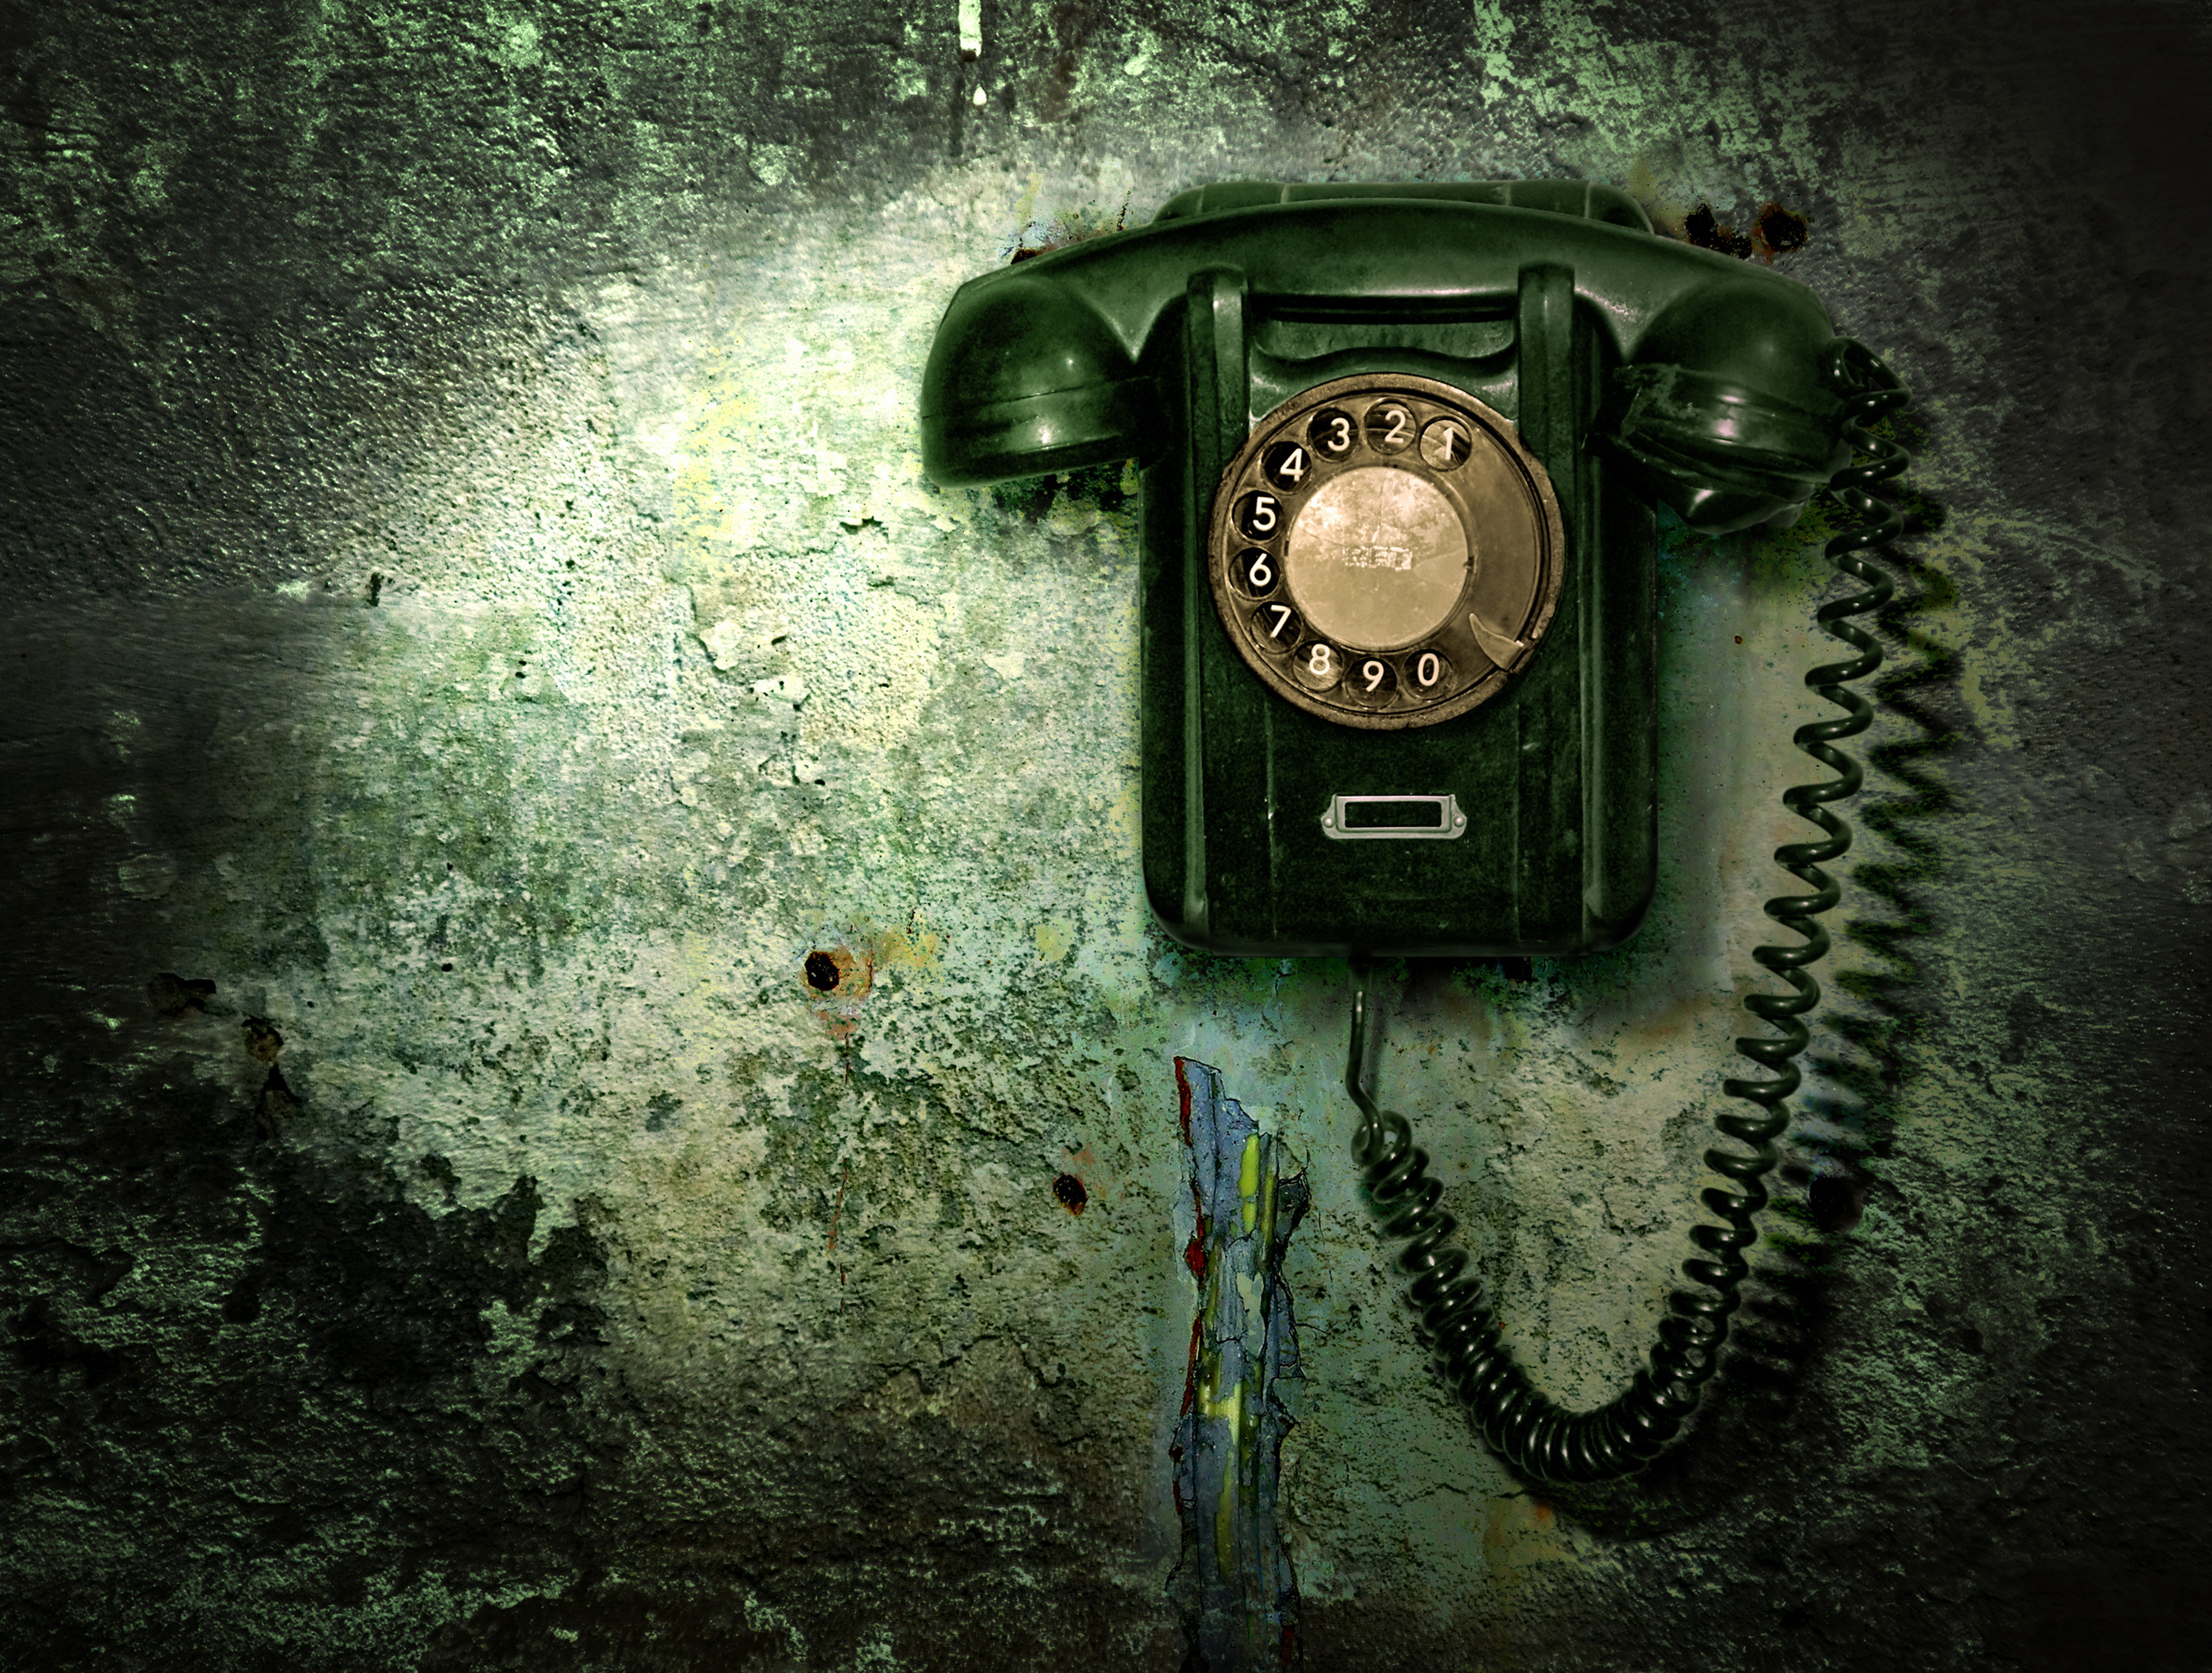 130992 download wallpaper Wall, Miscellanea, Miscellaneous, Wire, Telephone screensavers and pictures for free